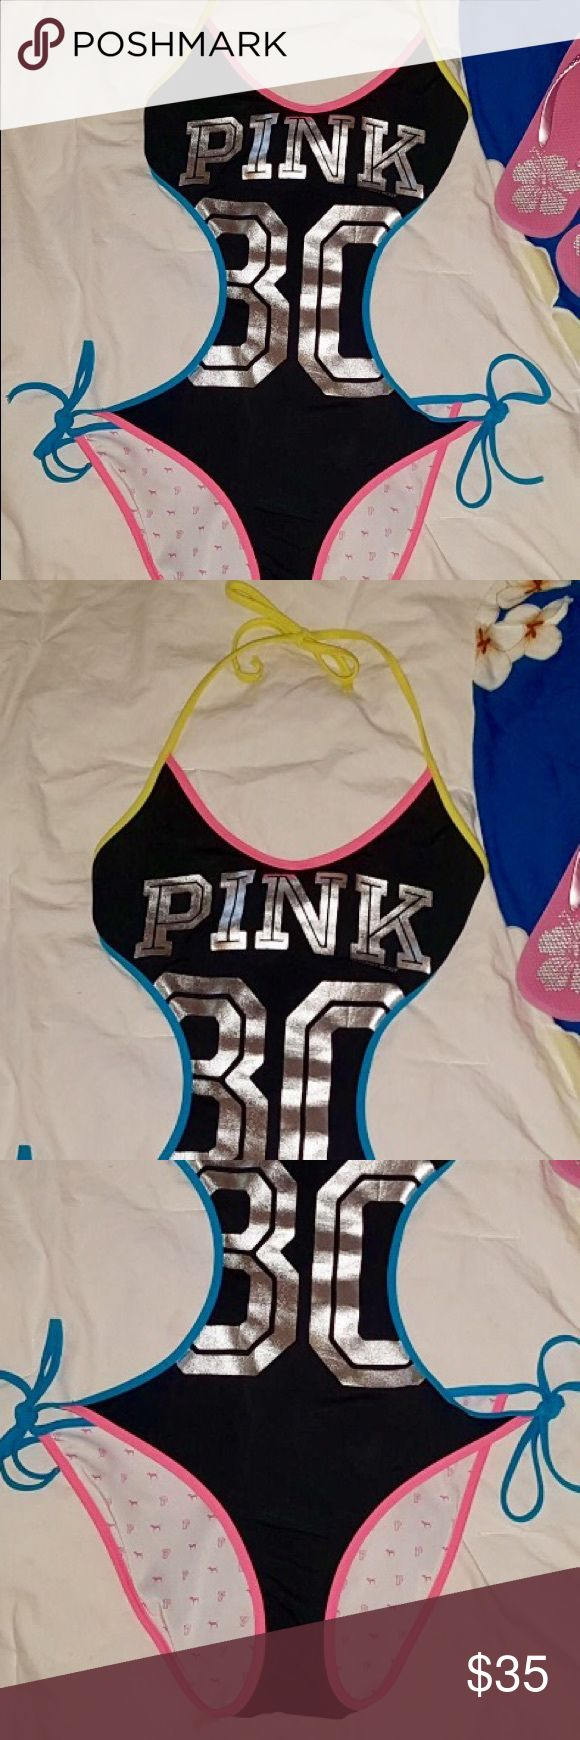 💙PINK💛One piece Swimsuit💖 Victoria's Secret 'pink' bathing suit. Size Small. One Piece with cut out sides and an open back💕. Very sexy cute, it's black with Silver writing. Hot pink trim, and turquoise & yellow straps. 🍭Thank you Gift with every order🍭 PINK Victoria's Secret Swim One Pieces